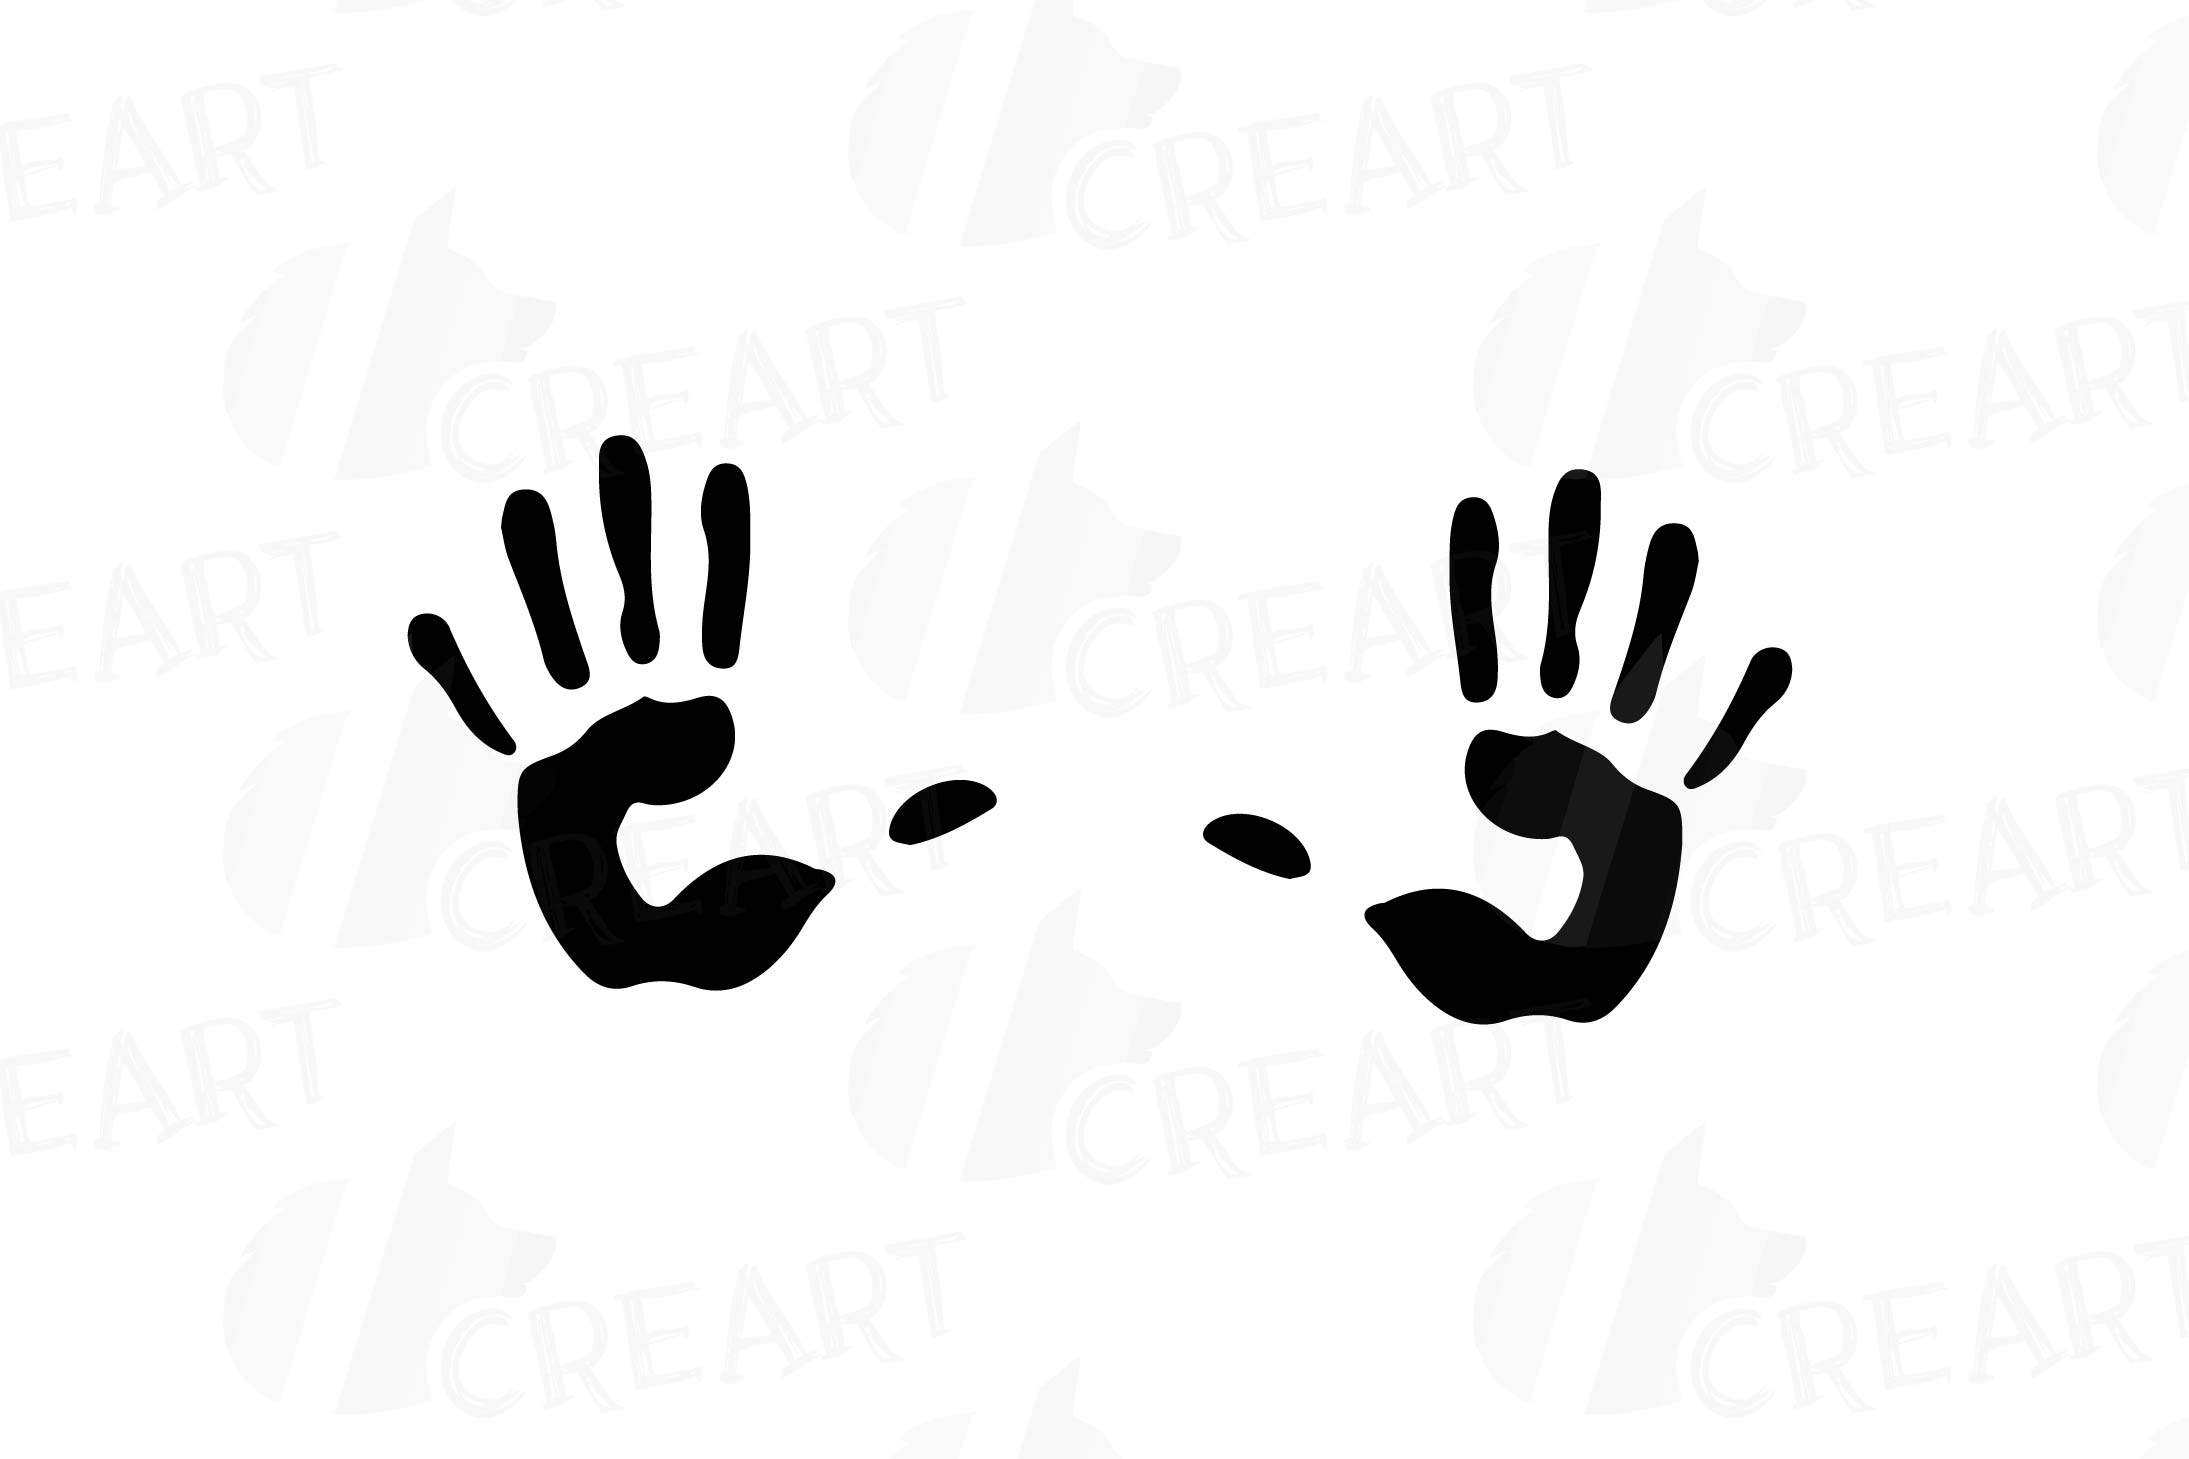 Handprint clipart human. Footprint and pack footprints